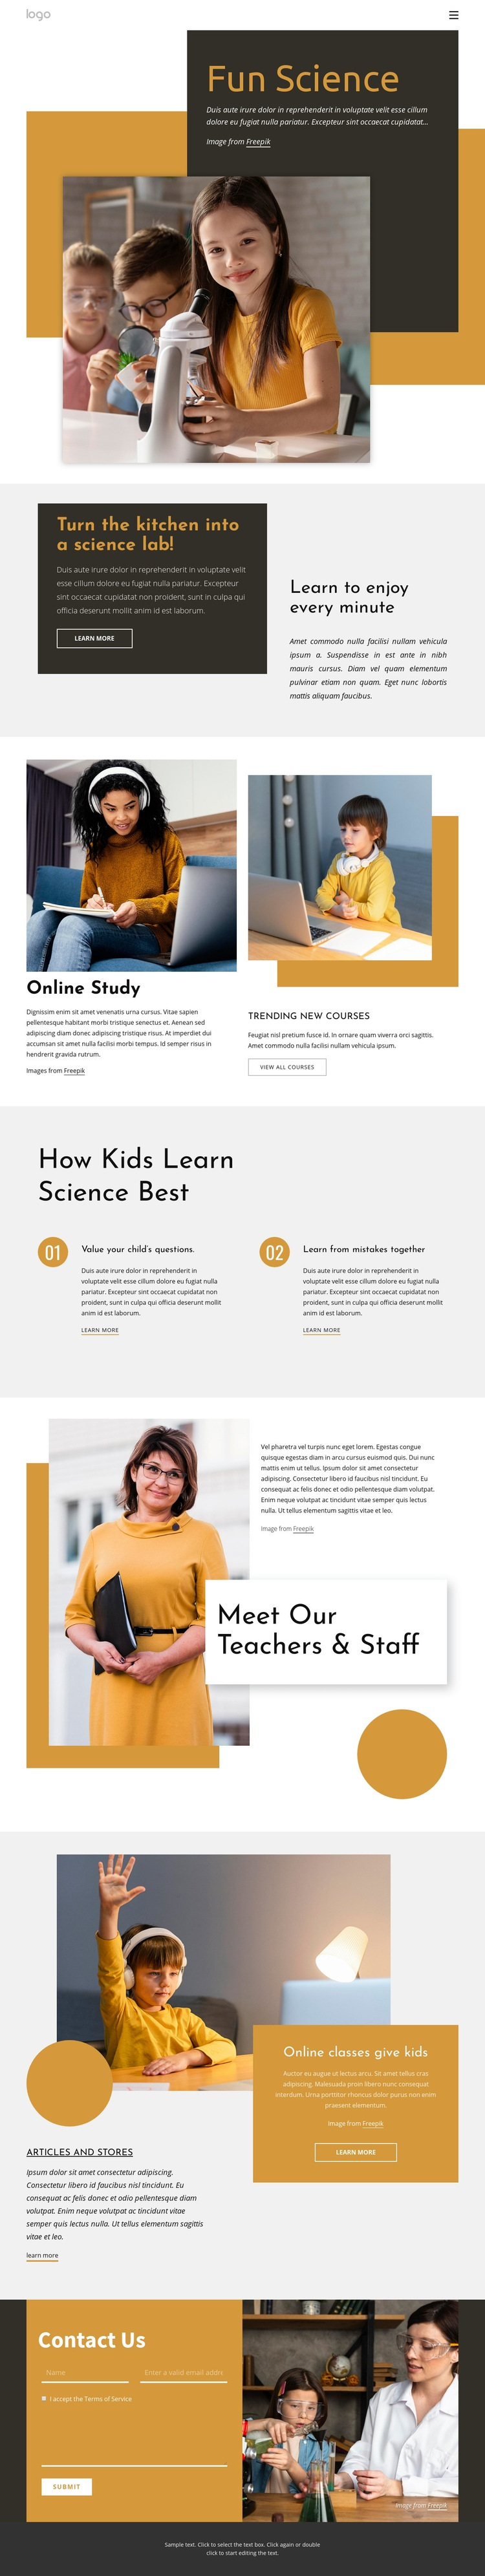 Cool science project Web Page Design